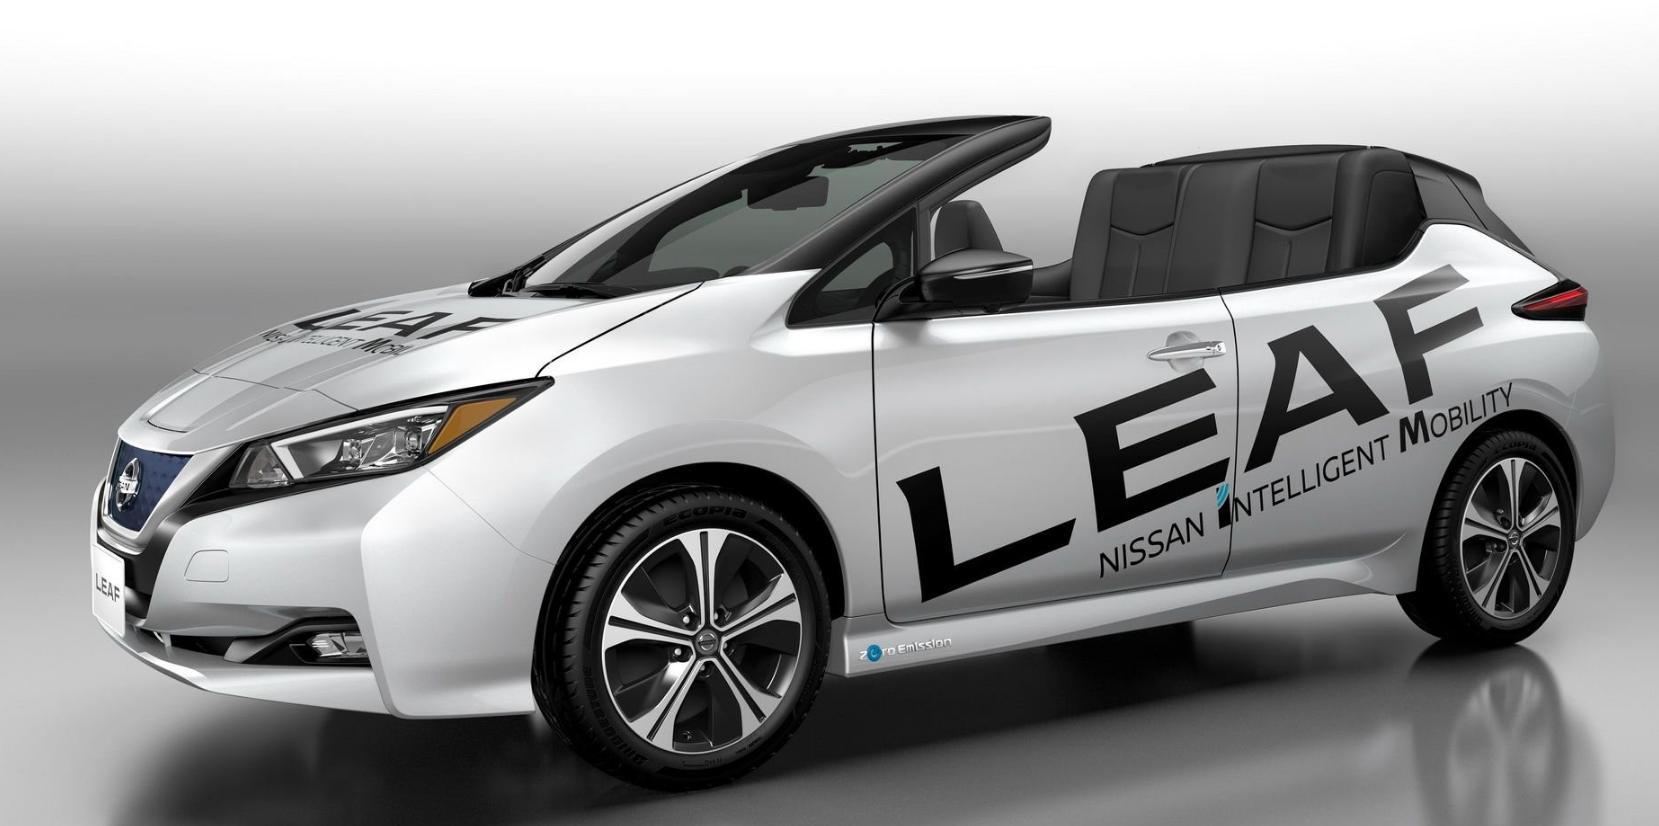 nissan devela la versi n descapotable del nuevo nissan leaf automundo. Black Bedroom Furniture Sets. Home Design Ideas